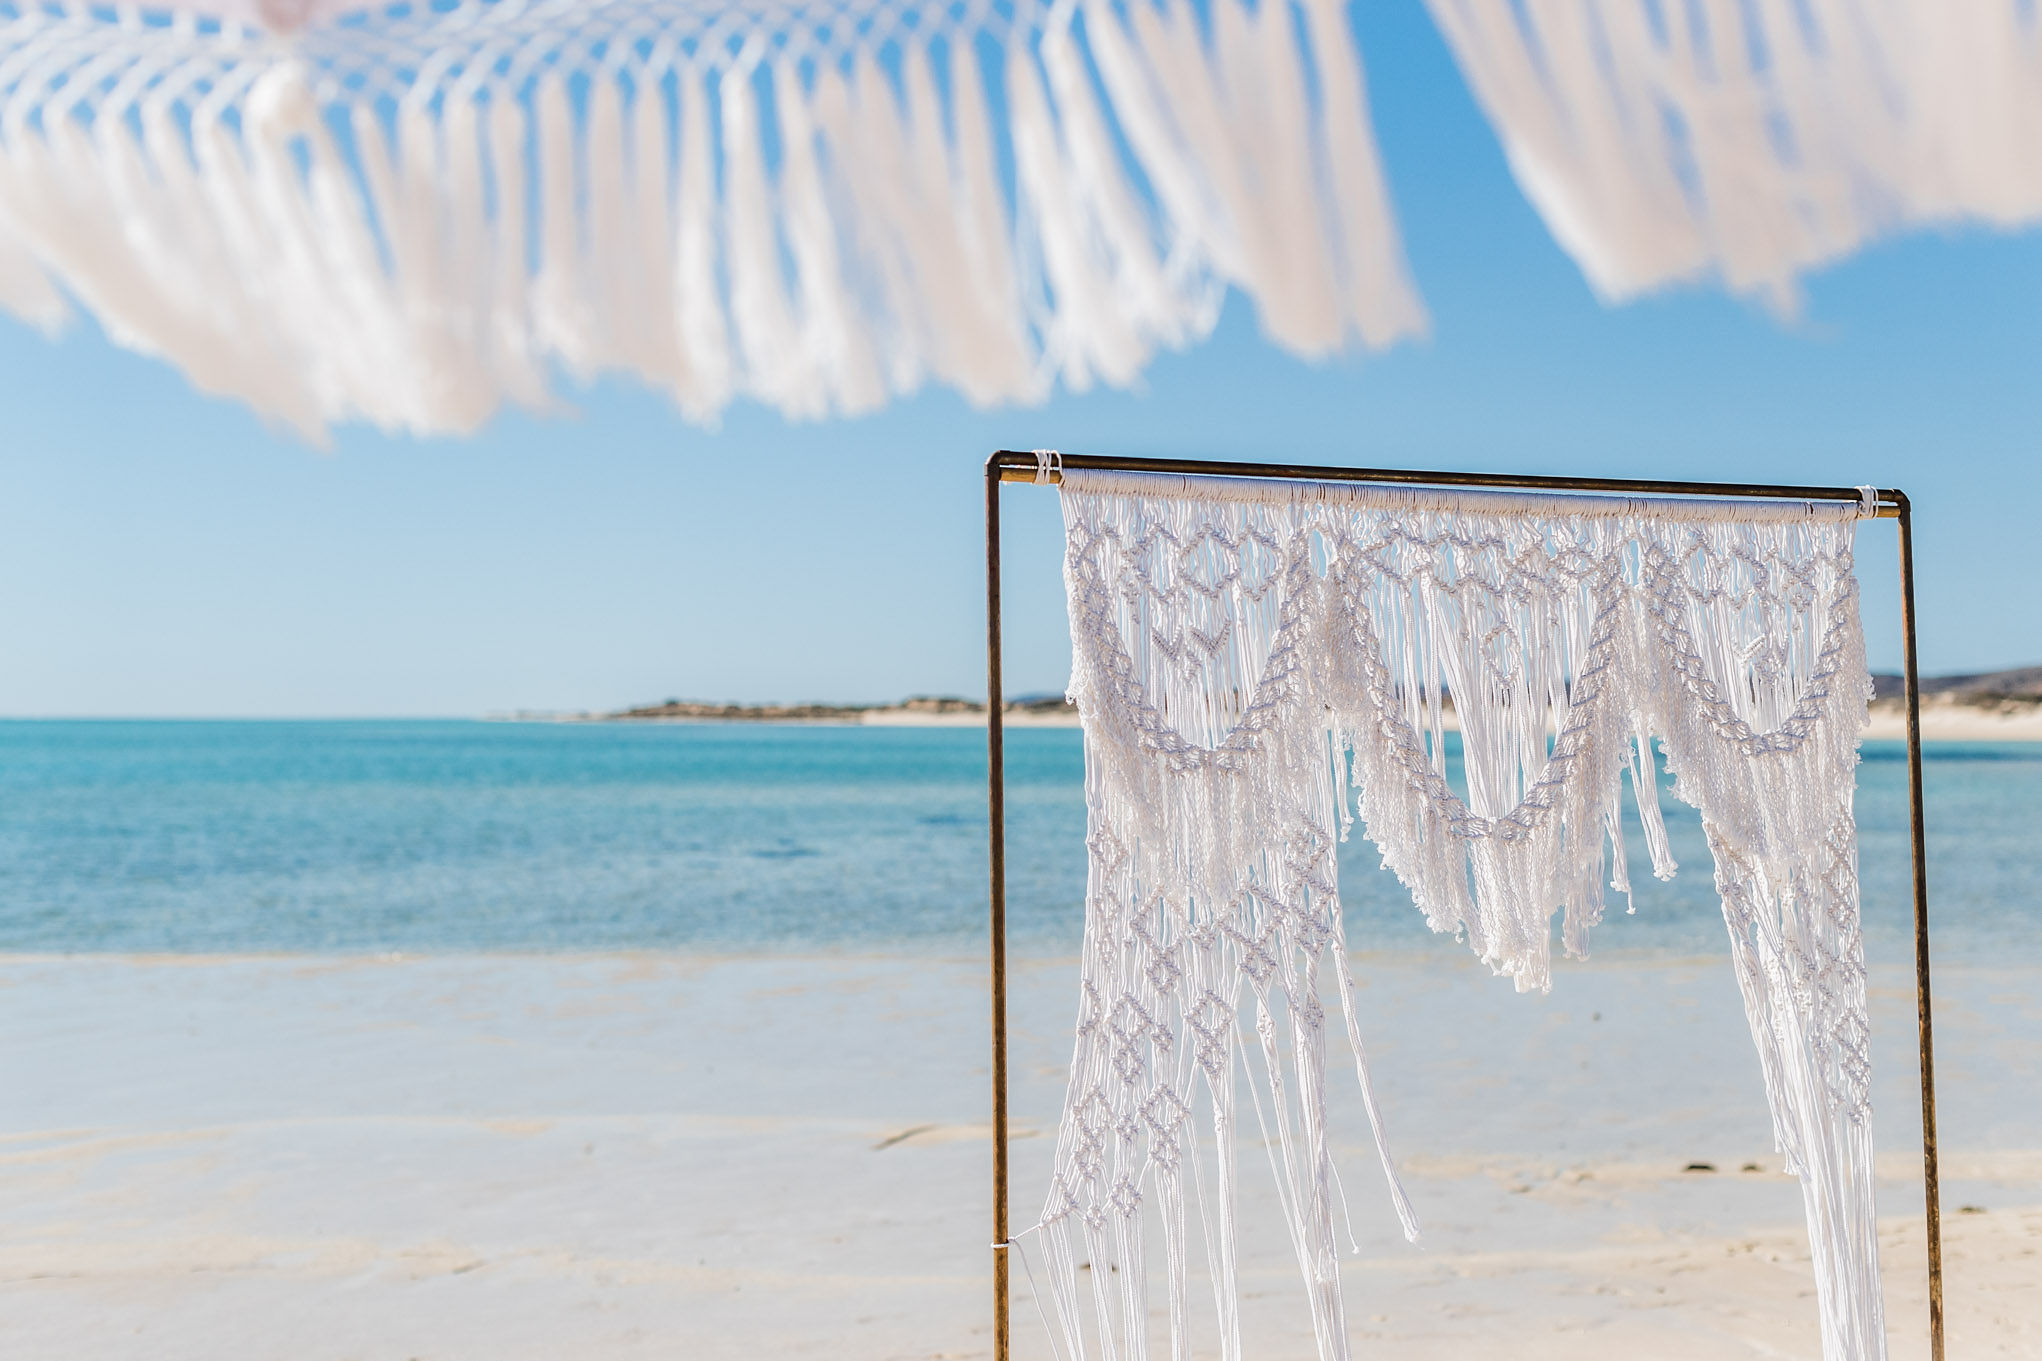 A&B-elope-to-ningaloo-wedding-bluemedia-weddings-89.jpg